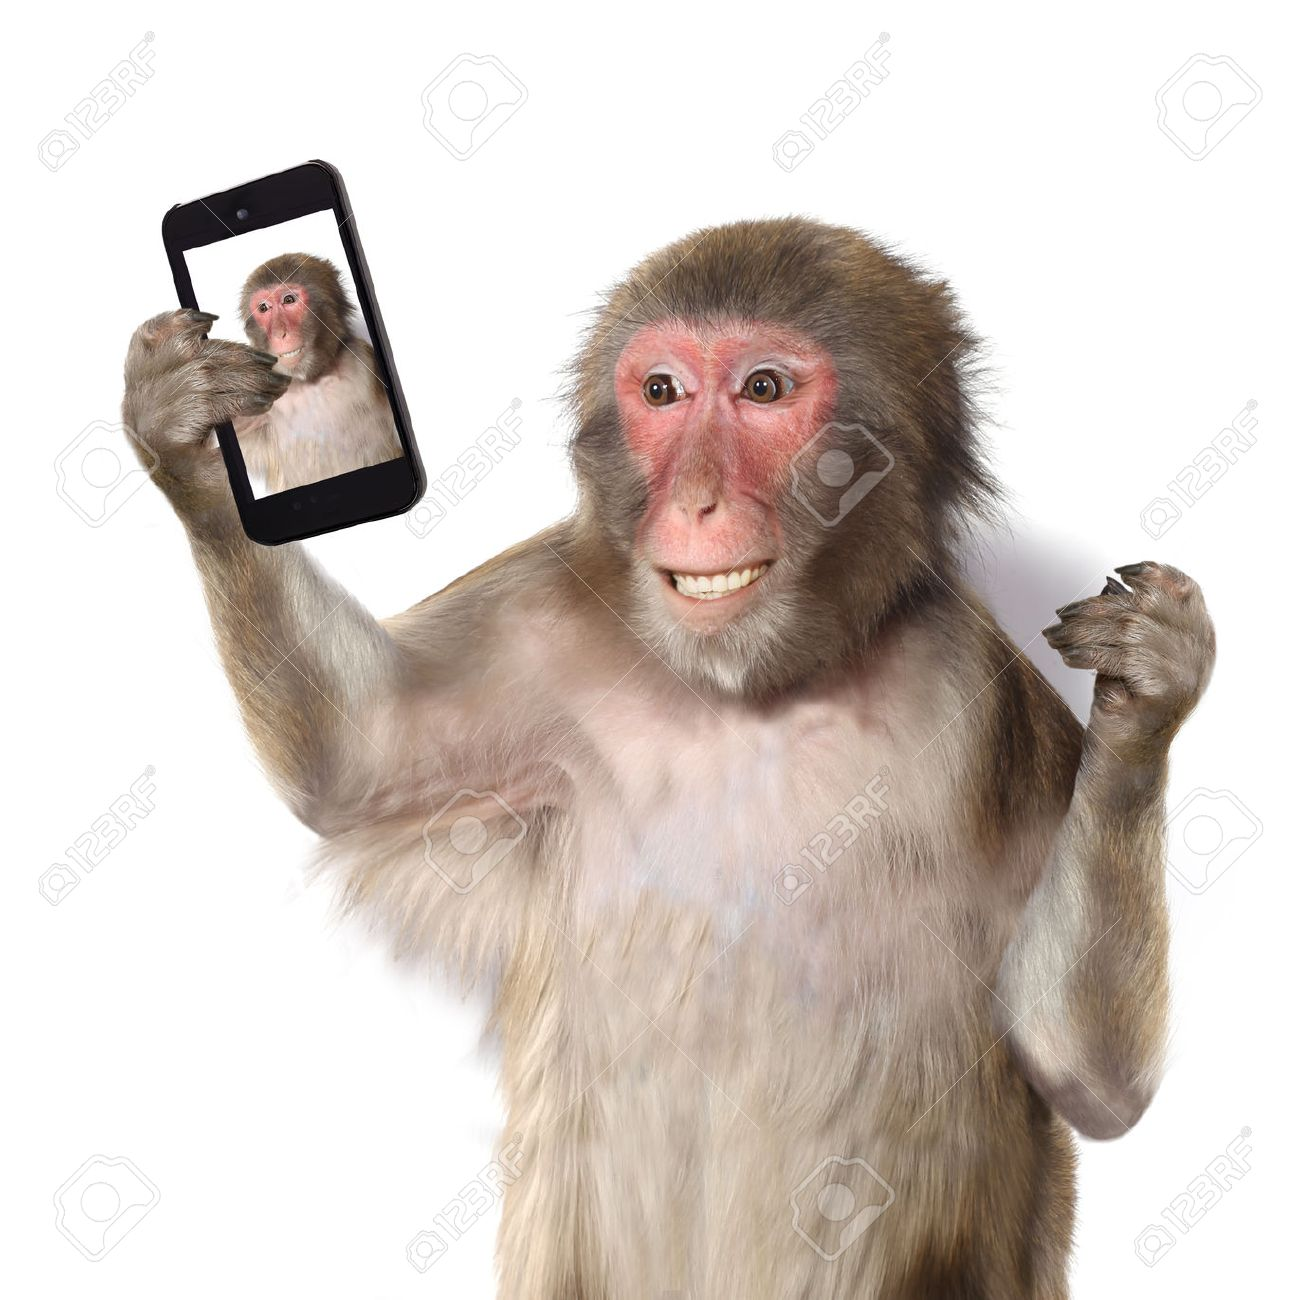 https://previews.123rf.com/images/lilkar/lilkar1509/lilkar150900028/45555387-Funny-monkey-taking-a-selfie-and-smiling-at-camera-Stock-Photo.jpg